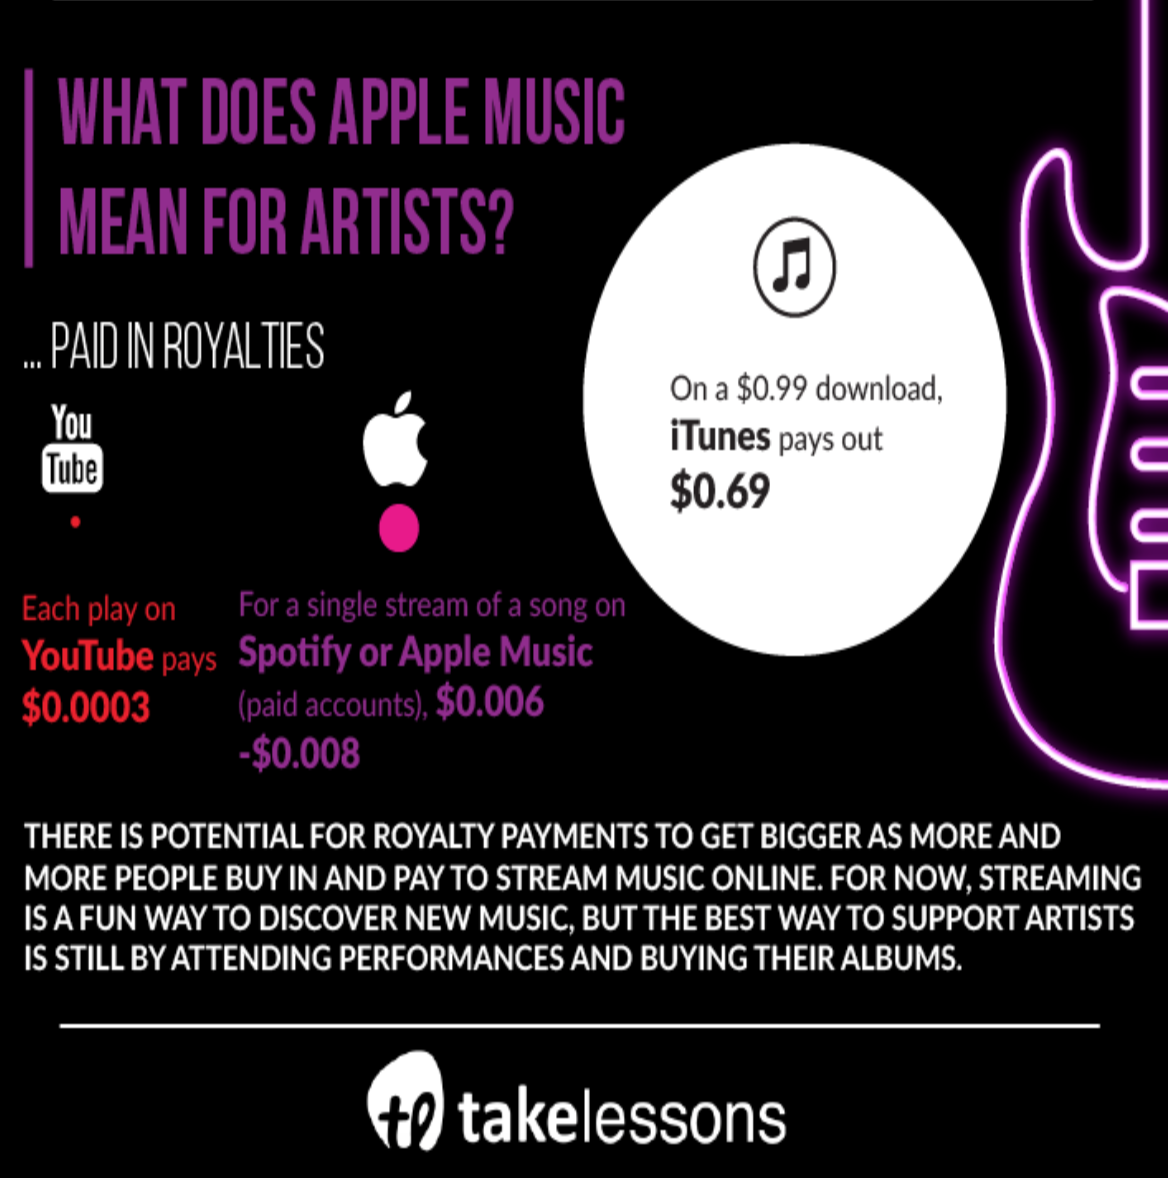 What Does Apple Music Mean For Artists Megan Liscomb